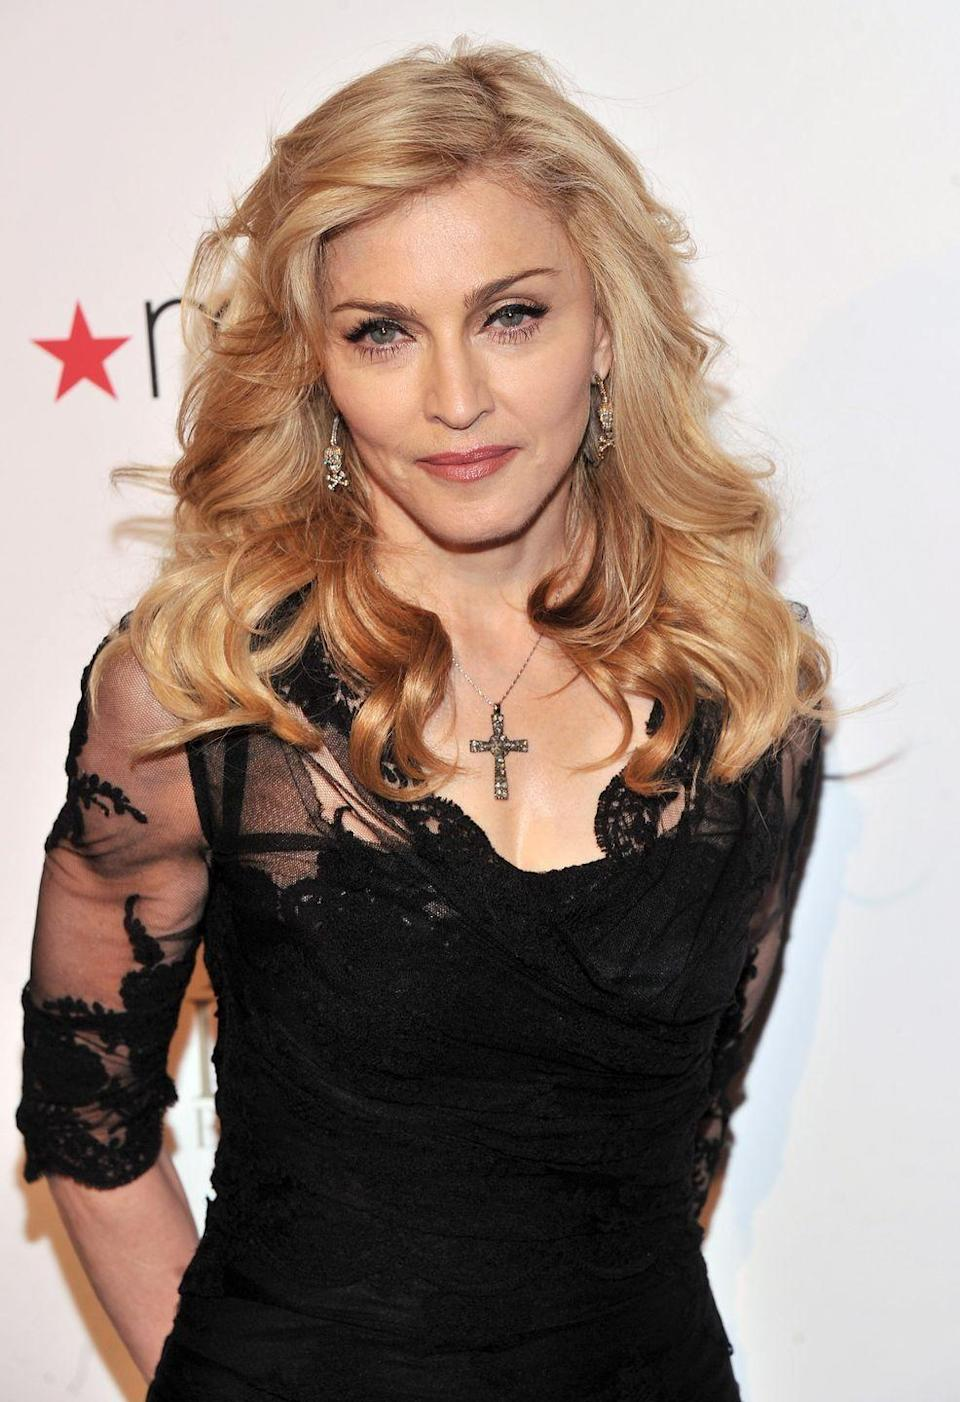 """<p>Madonna has definitely had a memorable career, but the first stranger who probably really remembers Madonna is a customer who encountered the Queen of Pop at Dunkin' Doughnuts. </p><p>The Grammy winner reportedly worked there before becoming an international icon—but, according to <a href=""""https://www.facebook.com/cnbc/posts/madonna-was-fired-from-dunkin-donuts-for-squirting-jelly-at-a-customer/10156719983849369/"""" rel=""""nofollow noopener"""" target=""""_blank"""" data-ylk=""""slk:CNBC"""" class=""""link rapid-noclick-resp"""">CNBC</a>, she was fired for squirting jelly at a customer. </p>"""